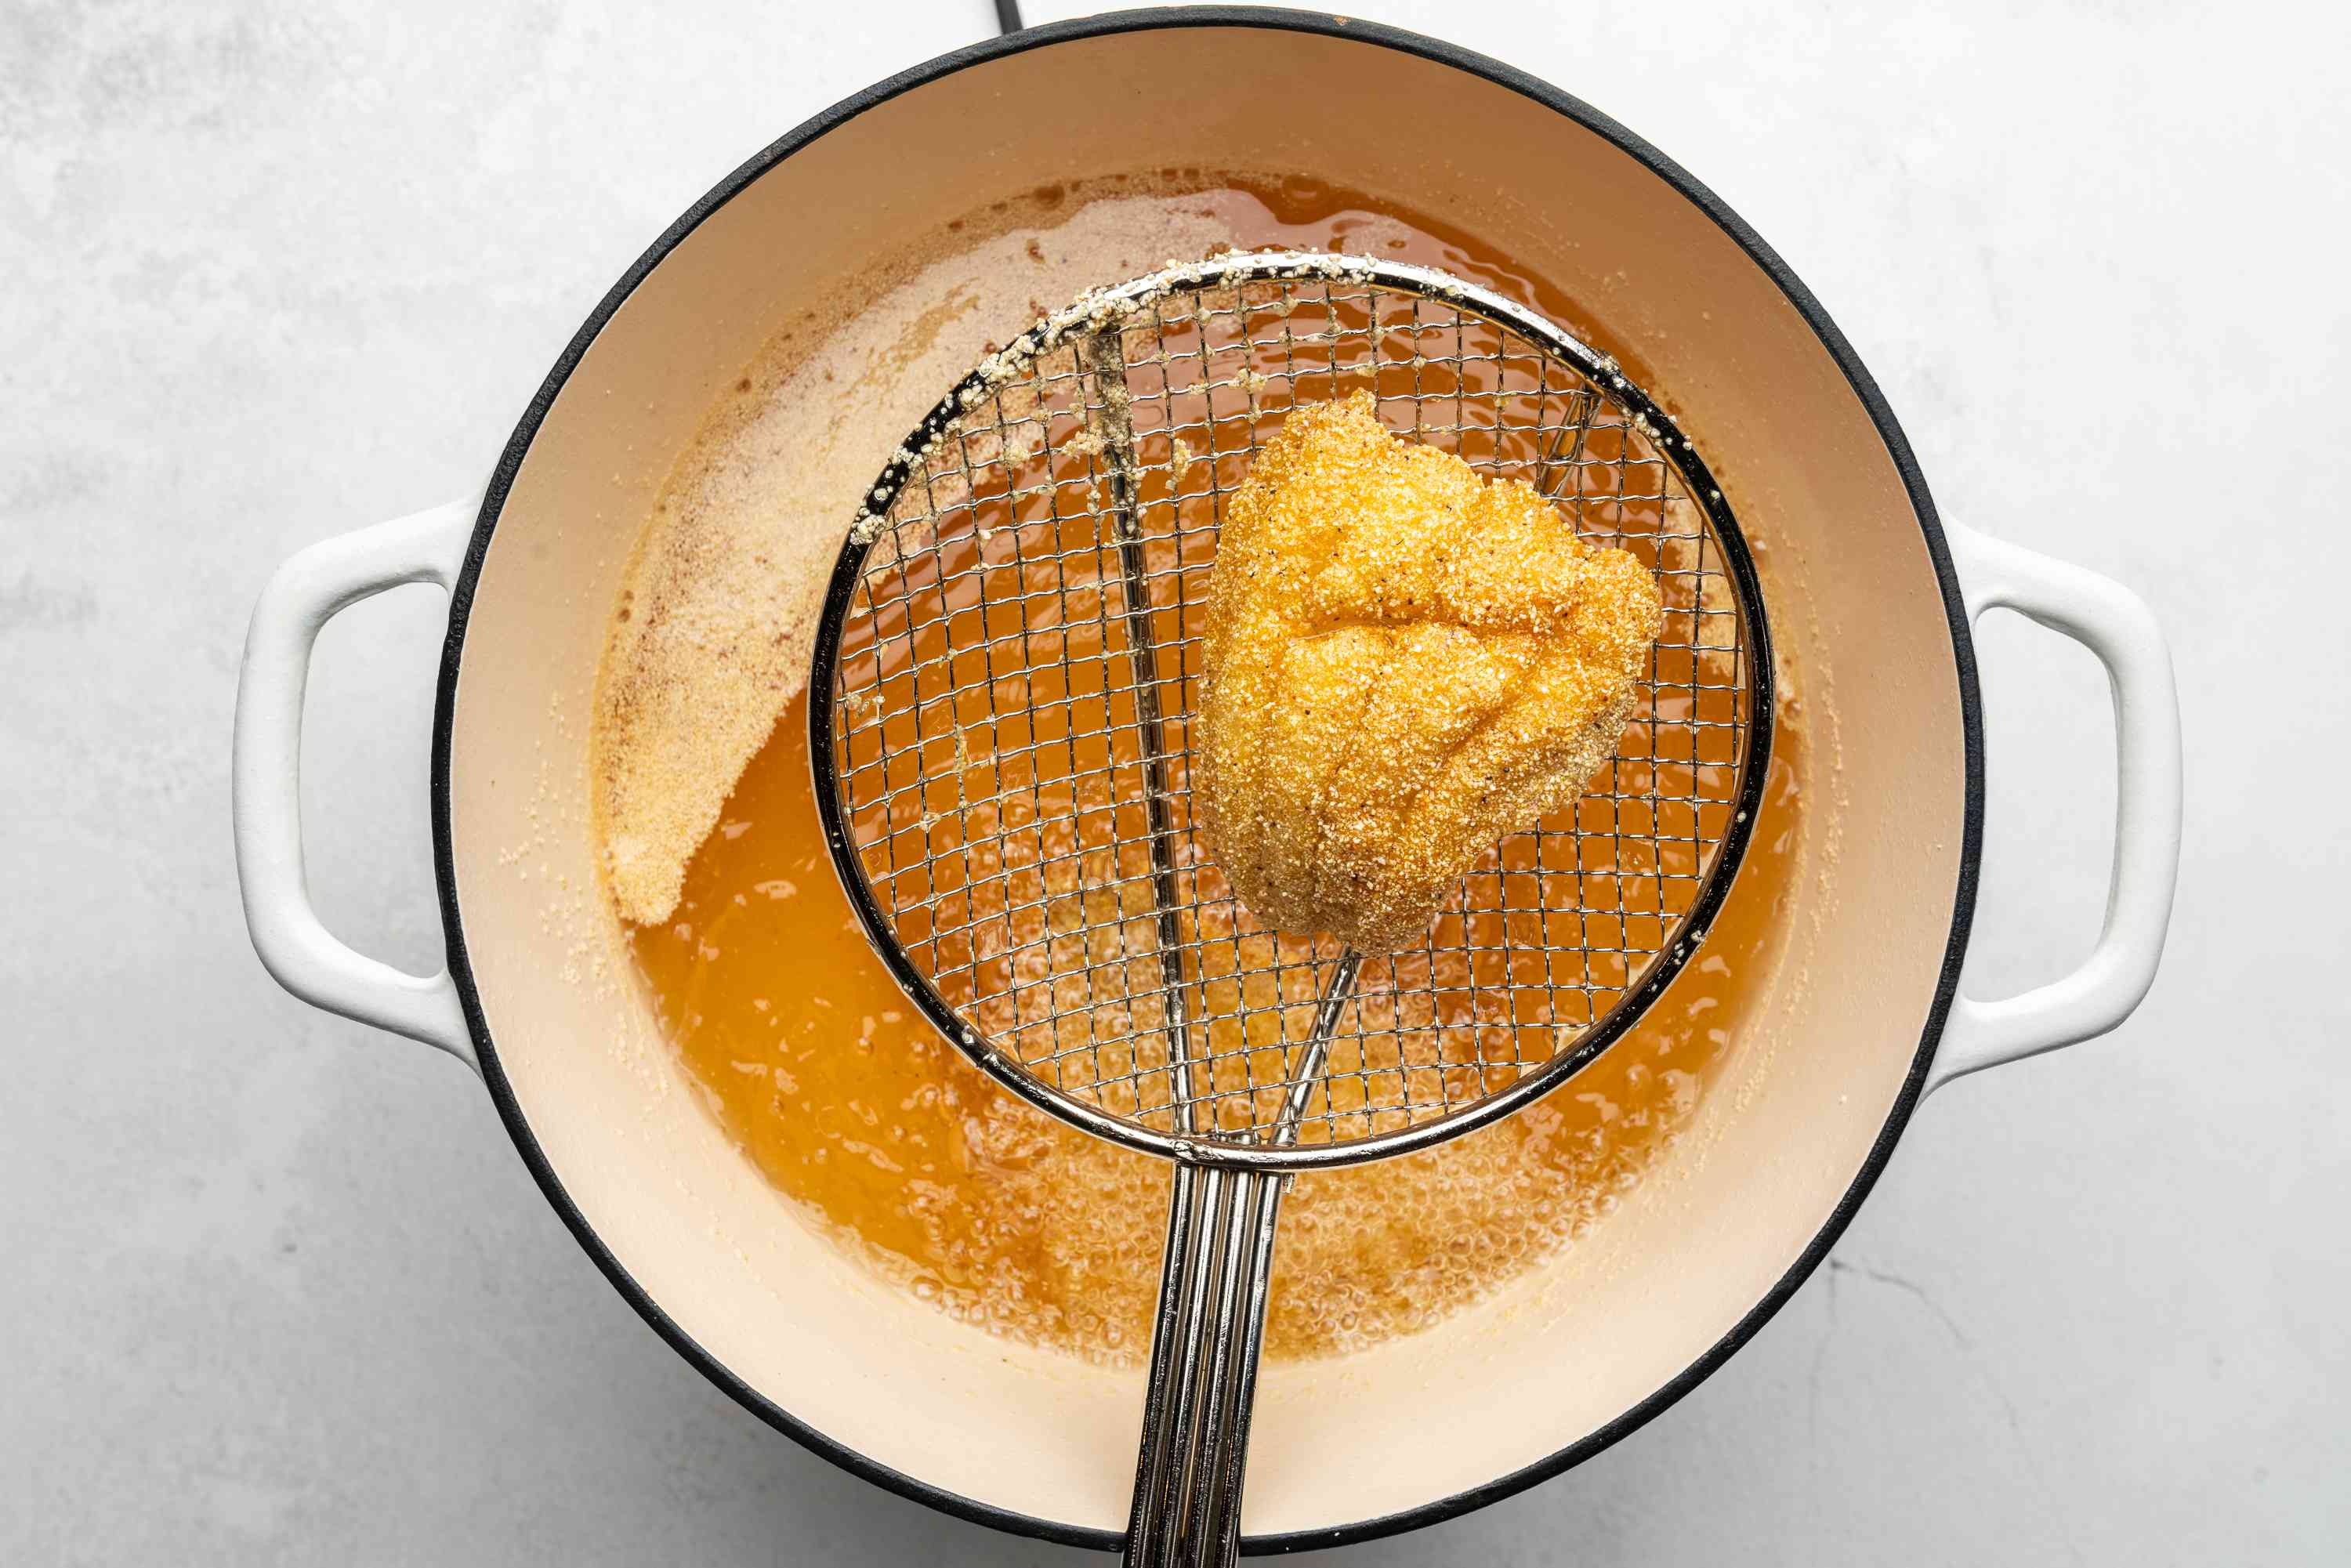 catfish fried in a pot of oil, removed from oil